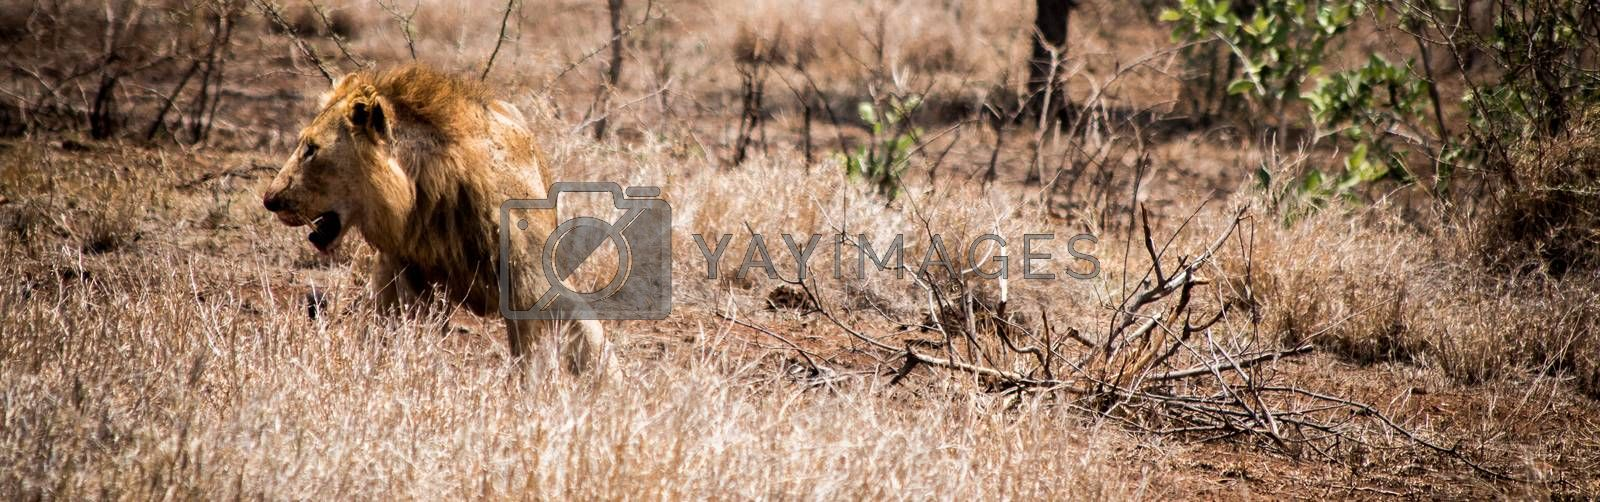 Lion laying in the grass in the Kruger National Park, South Africa.